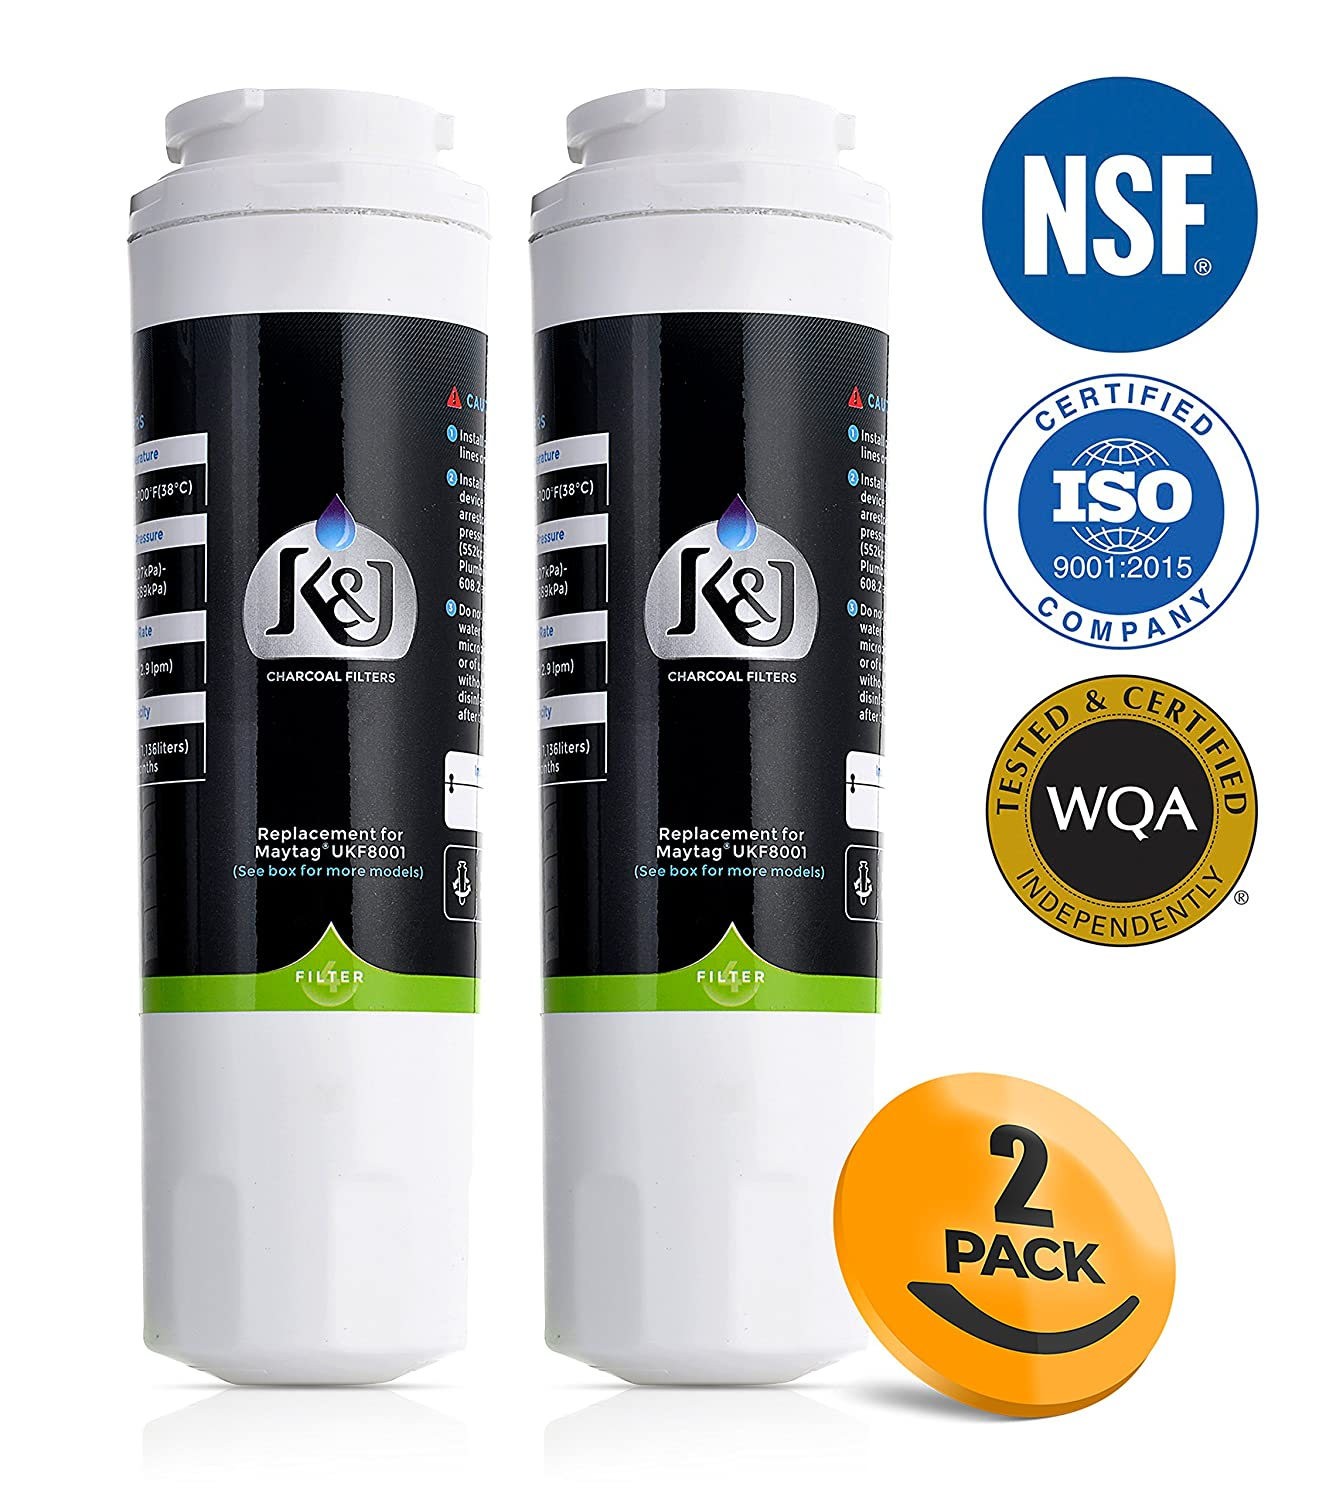 K&J Refrigerator Water Filter Maytag Compatible for UKF8001 Pur - Replacement for Maytag UKF8001, UKF8001AXX, EDR4RXD1, Puriclean II, and Kenmore 9006 (2 Pack)